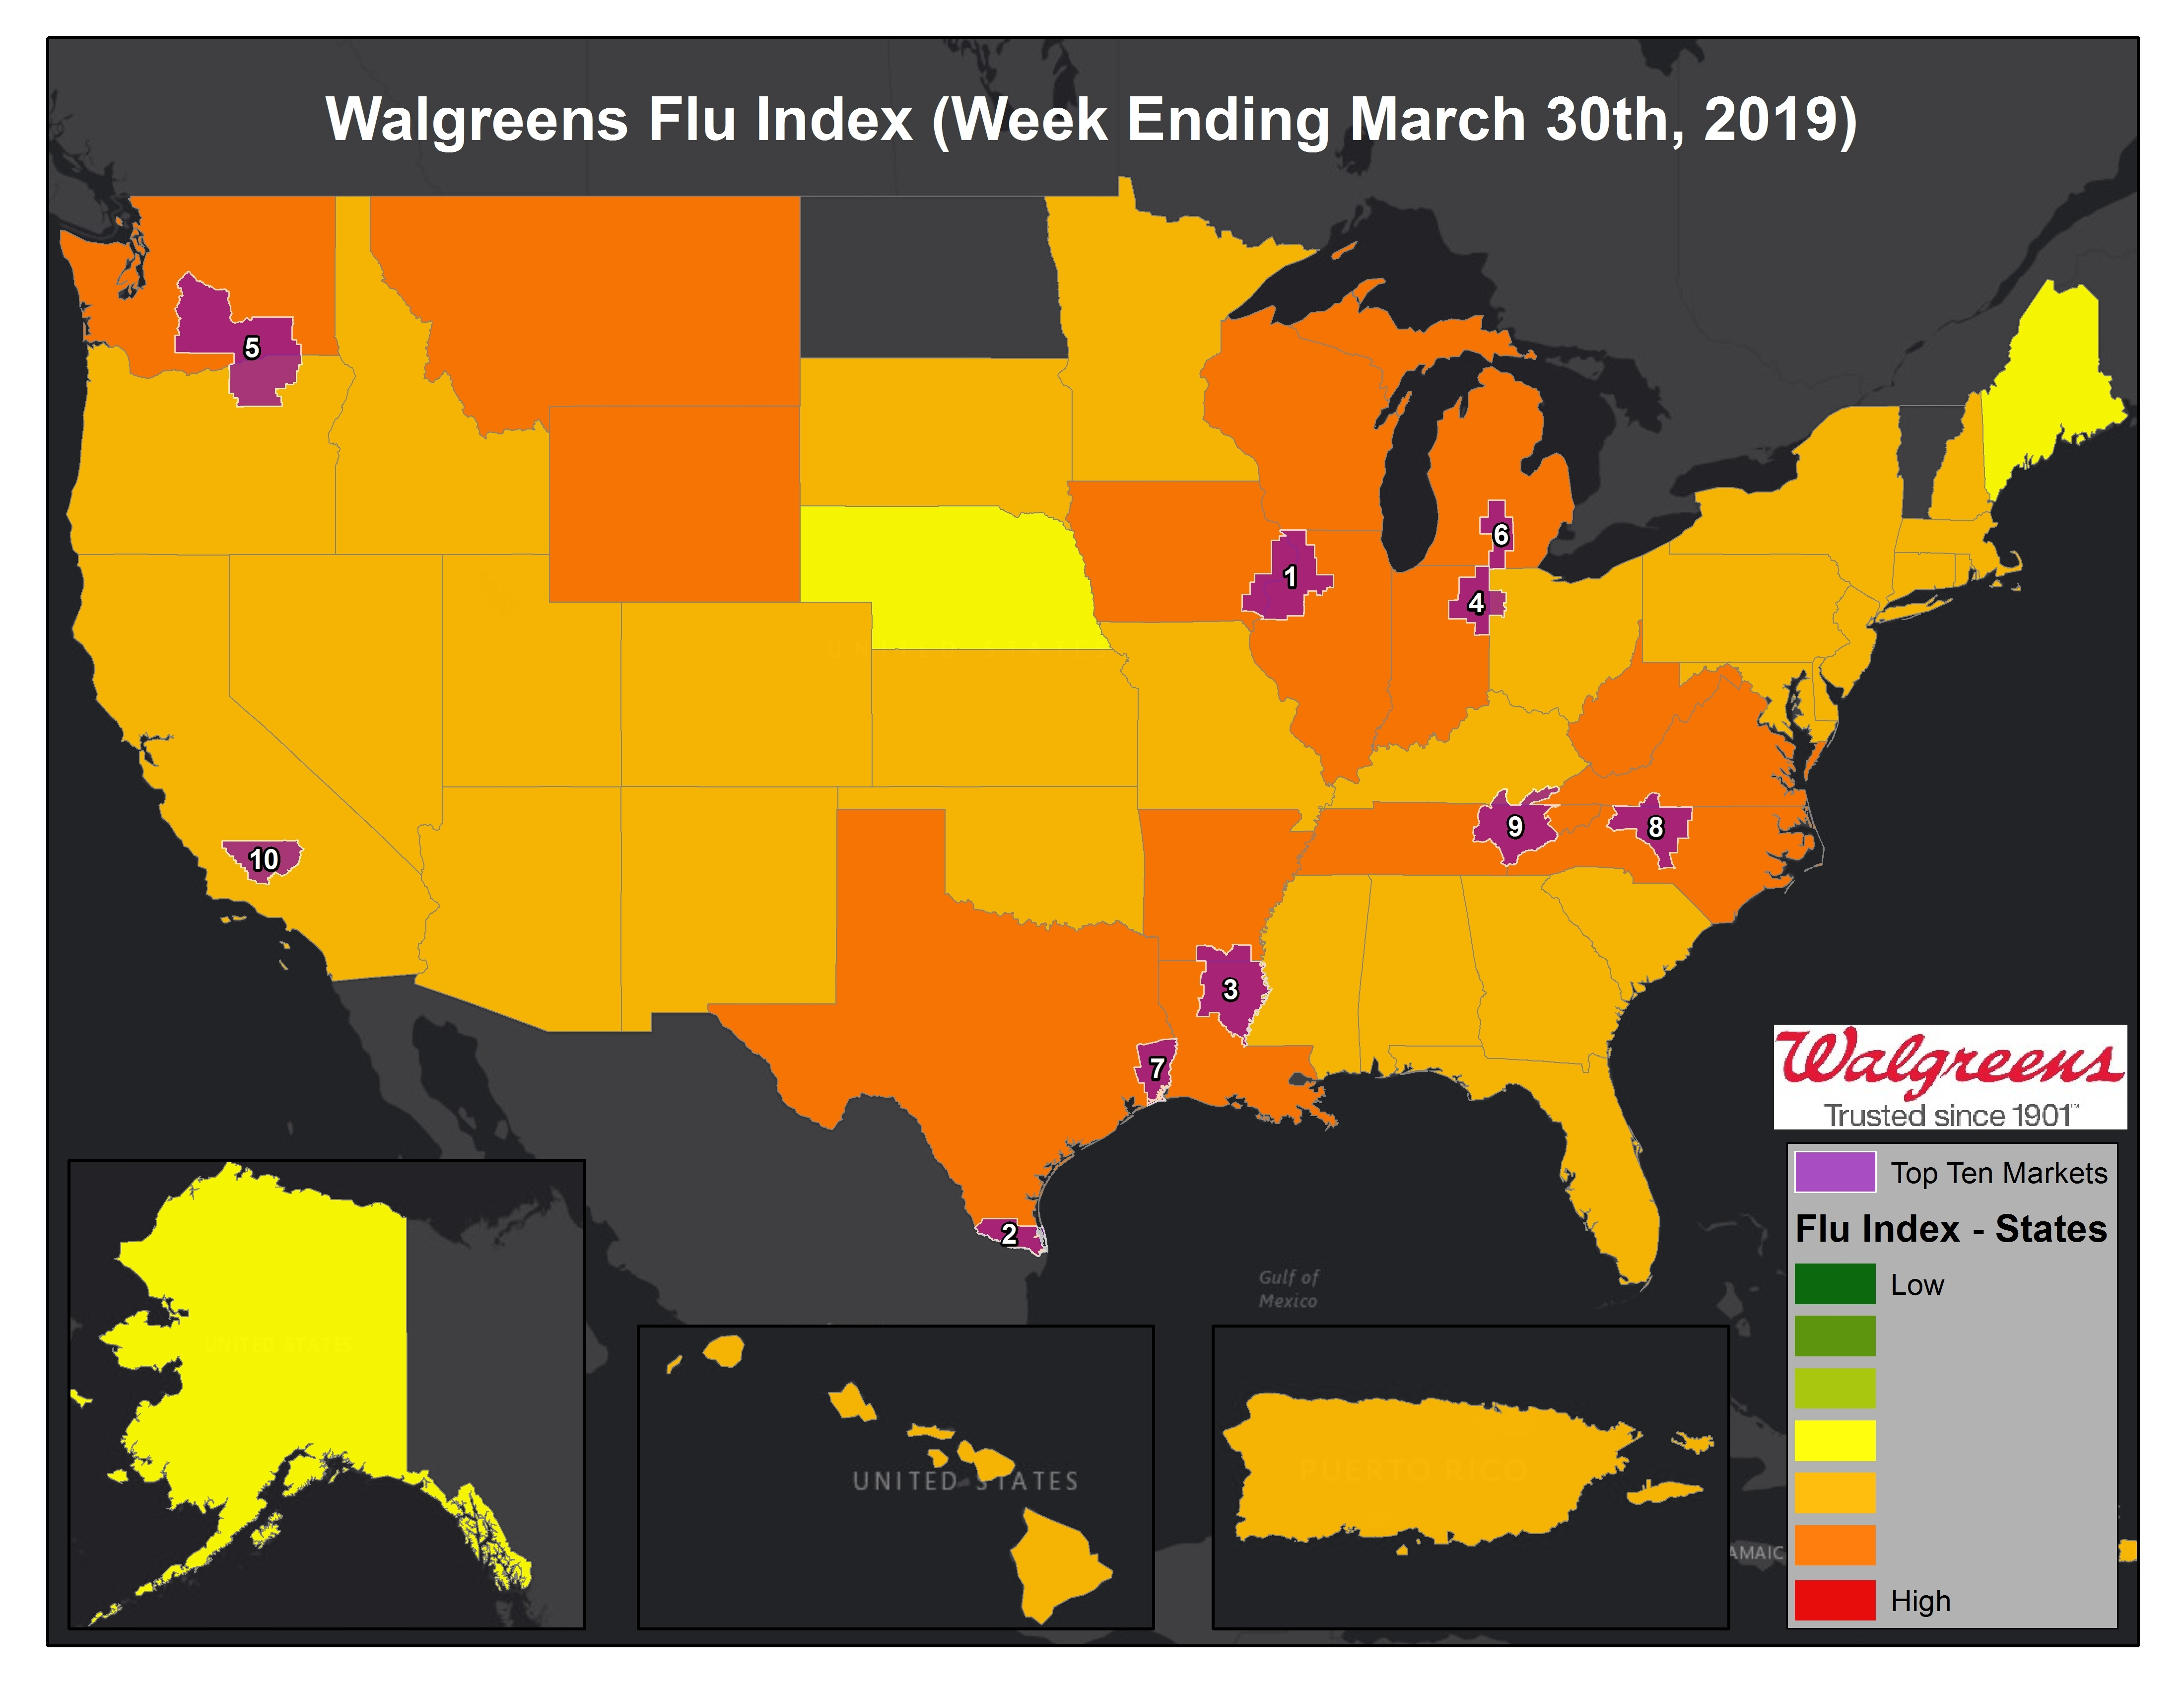 New England Sees Flu Activity Gains   Business Wire on stroke map, multiple sclerosis map, canine influenza map, influenza outbreak map, dengue fever map, strep throat map, diabetes map, fluview map, autism map, h1n1 map, adhd map, influenza a map, pandemic map, hiv/aids map, spanish influenza map, depression map, virus map, pain map, infection map, epilepsy map,